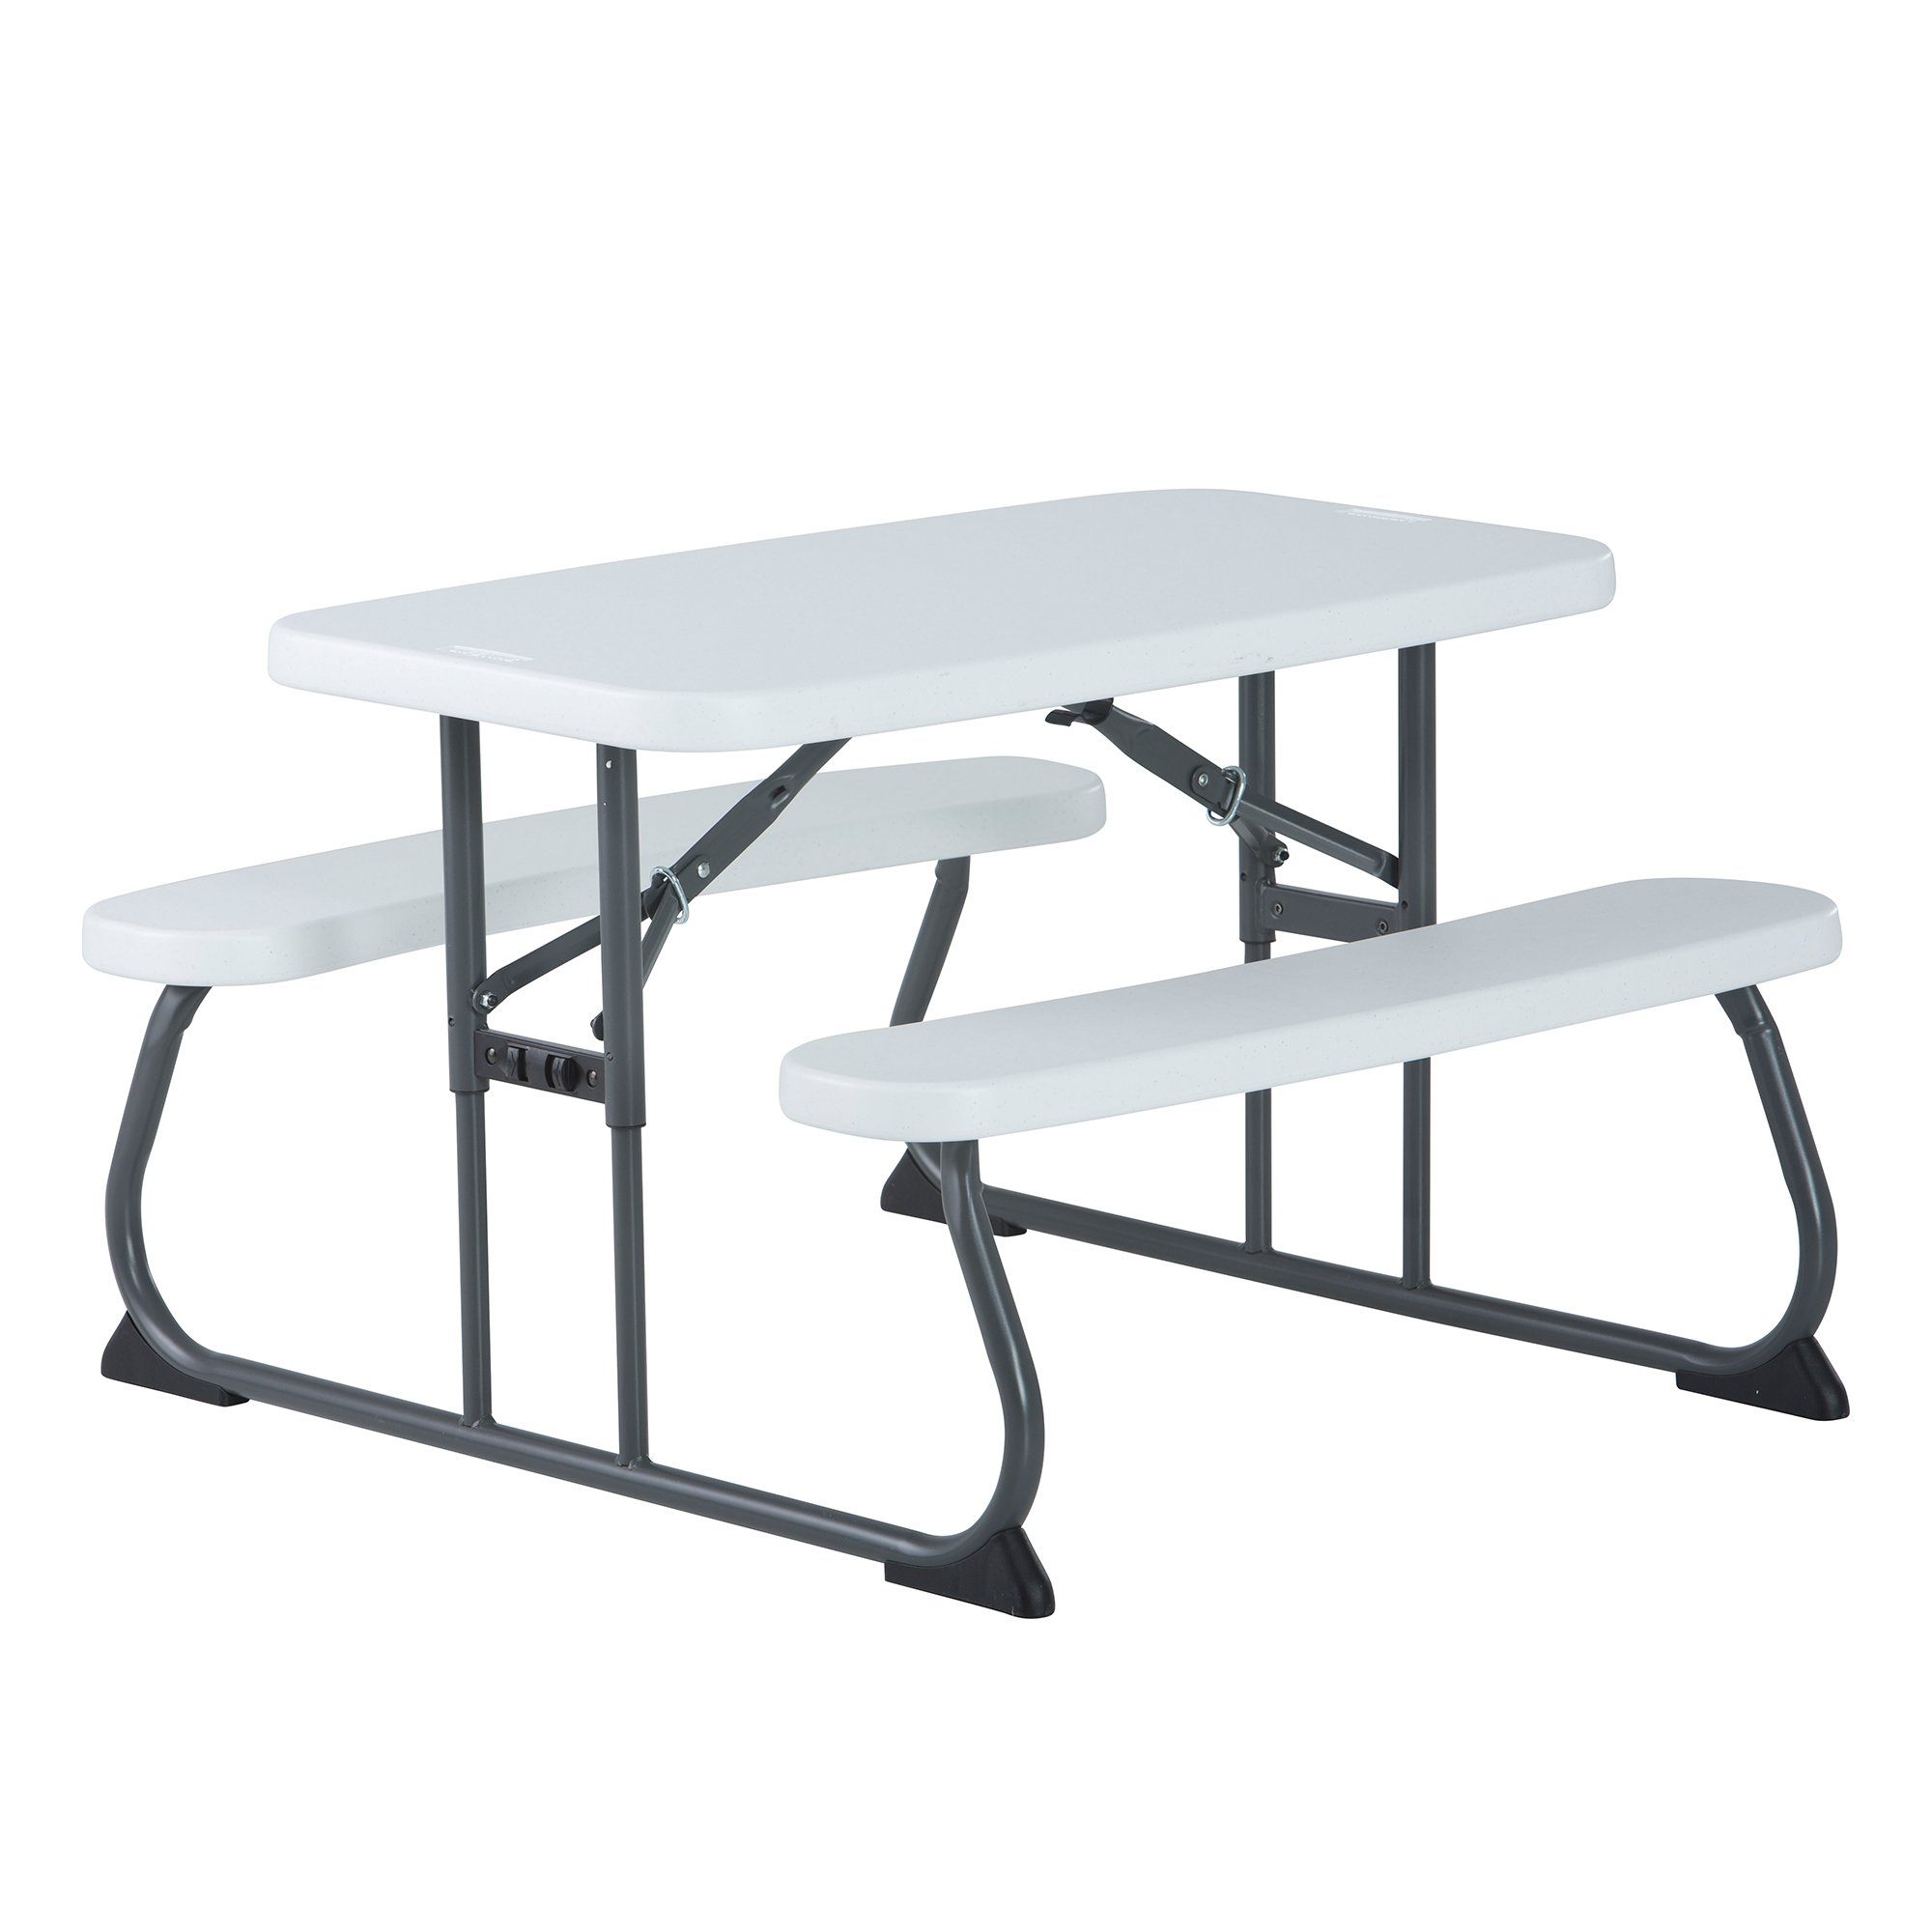 Lifetime 60239 Kid's Picnic Table, White by Lifetime